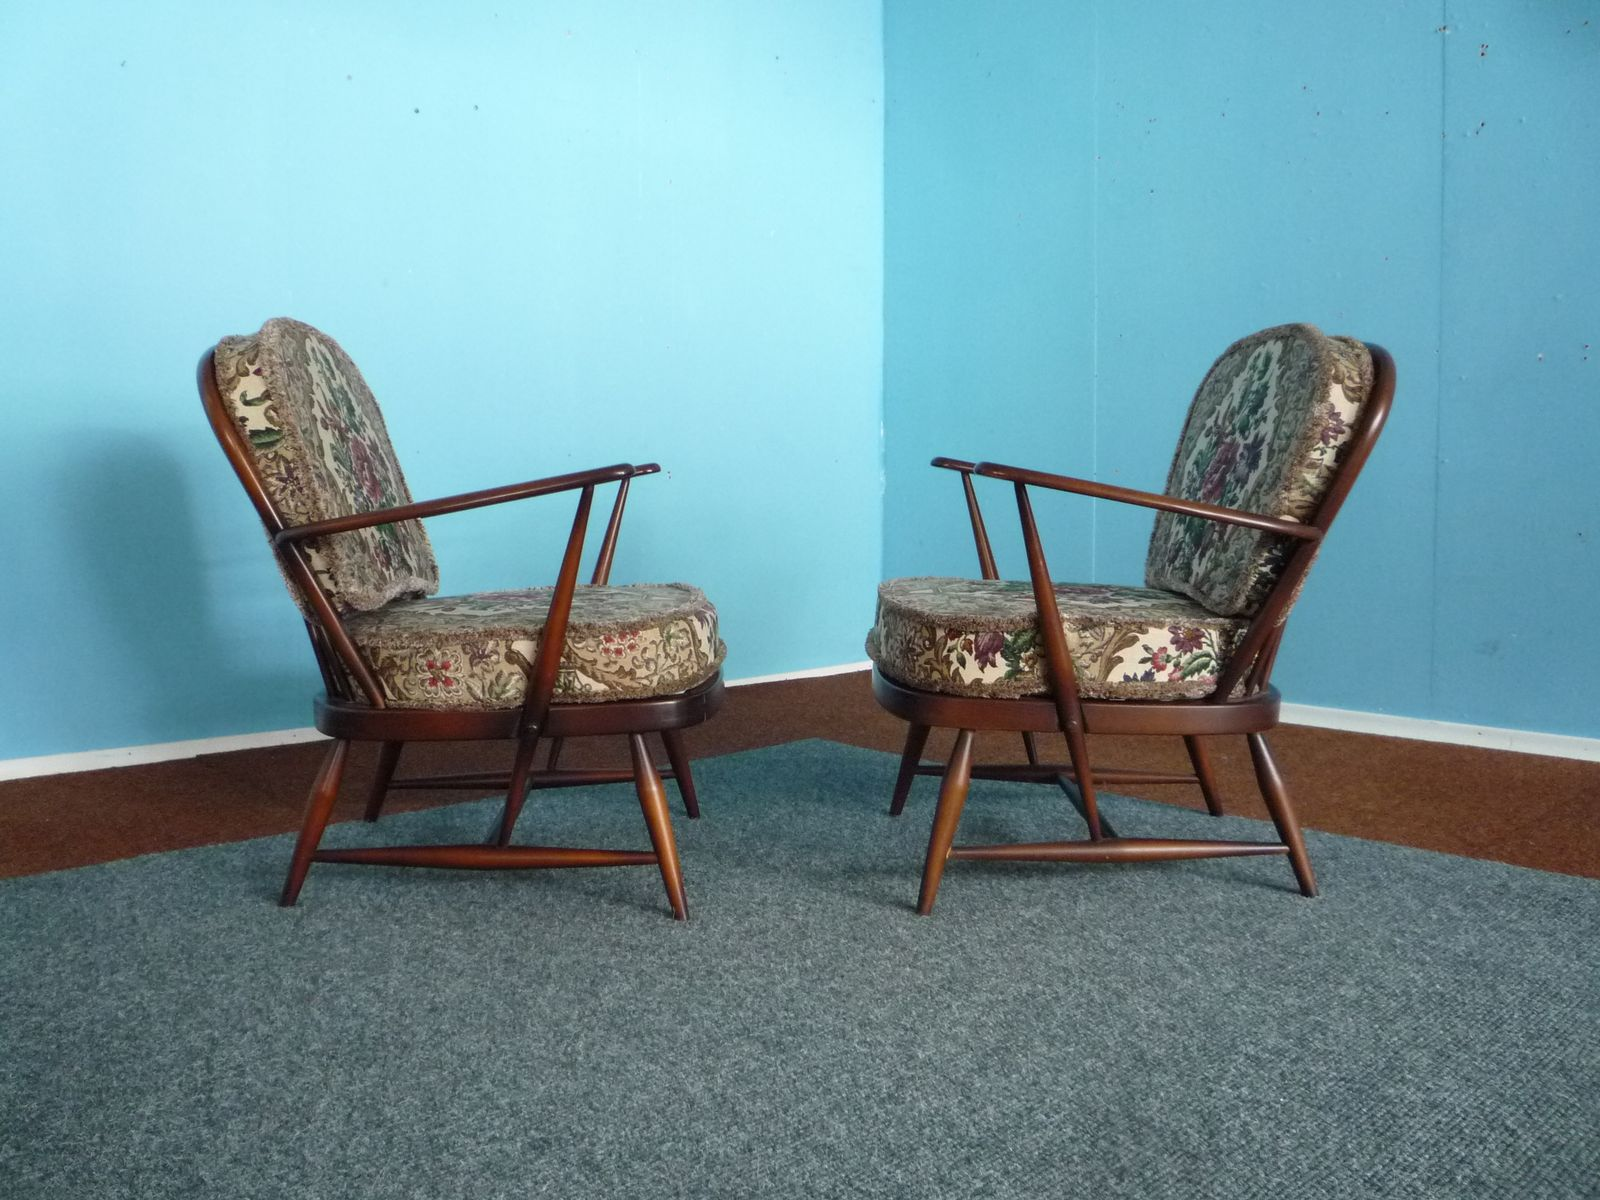 Vintage Model 203 Easy Chairs by Lucian Ercolani for Ercol  Set of 2Vintage Model 203 Easy Chairs by Lucian Ercolani for Ercol  Set of  . Ercol Easy Chairs For Sale. Home Design Ideas